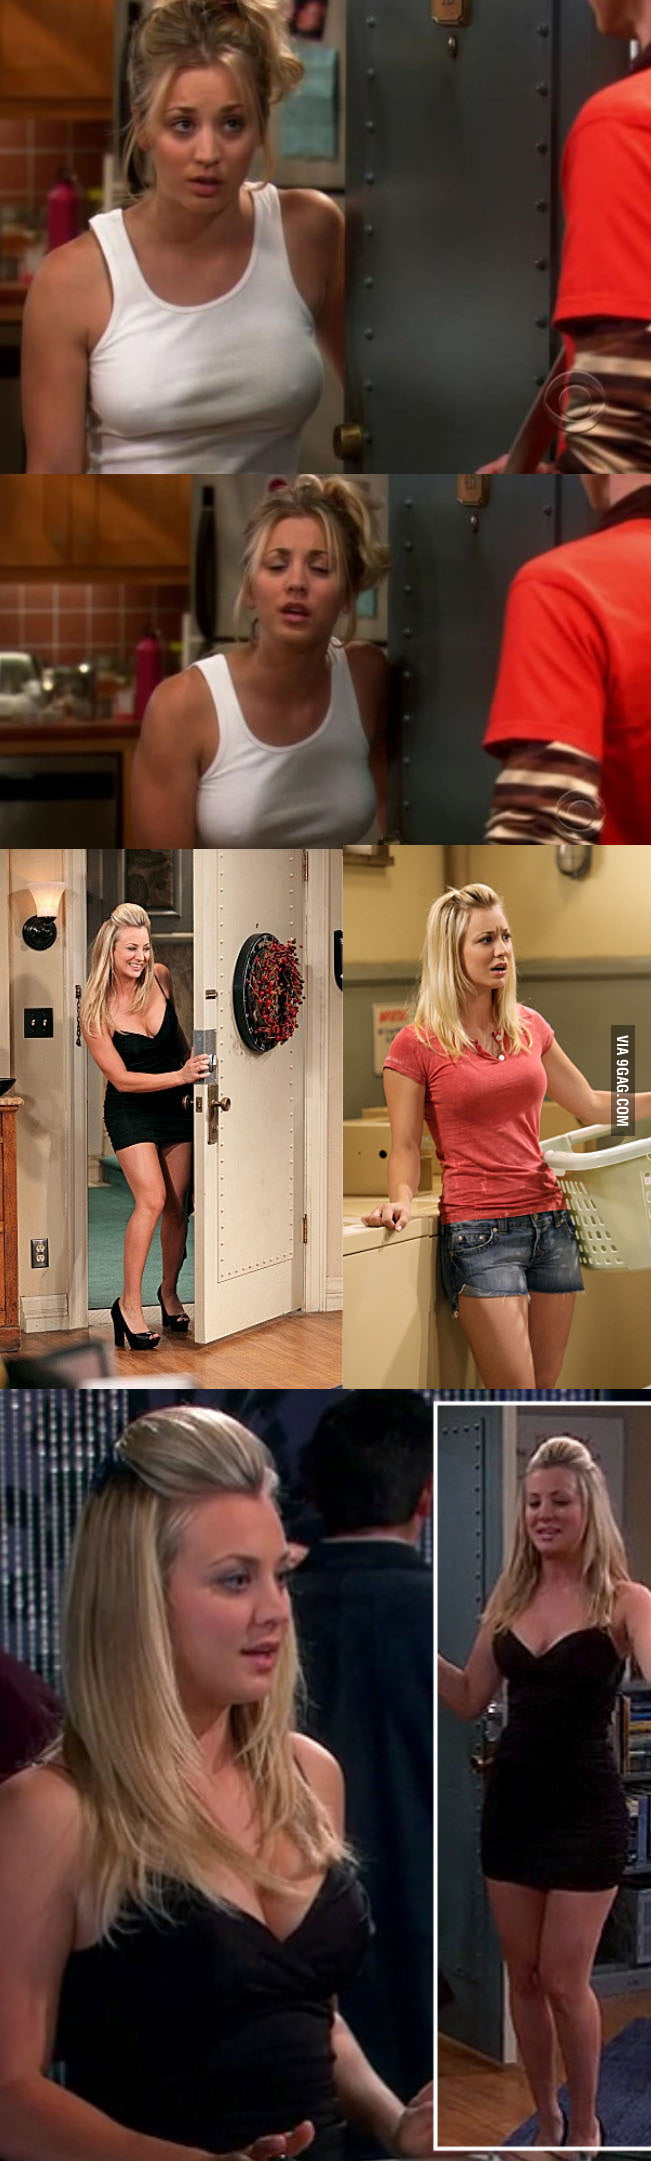 Penny one of the reason I watch The Big Bang Theory